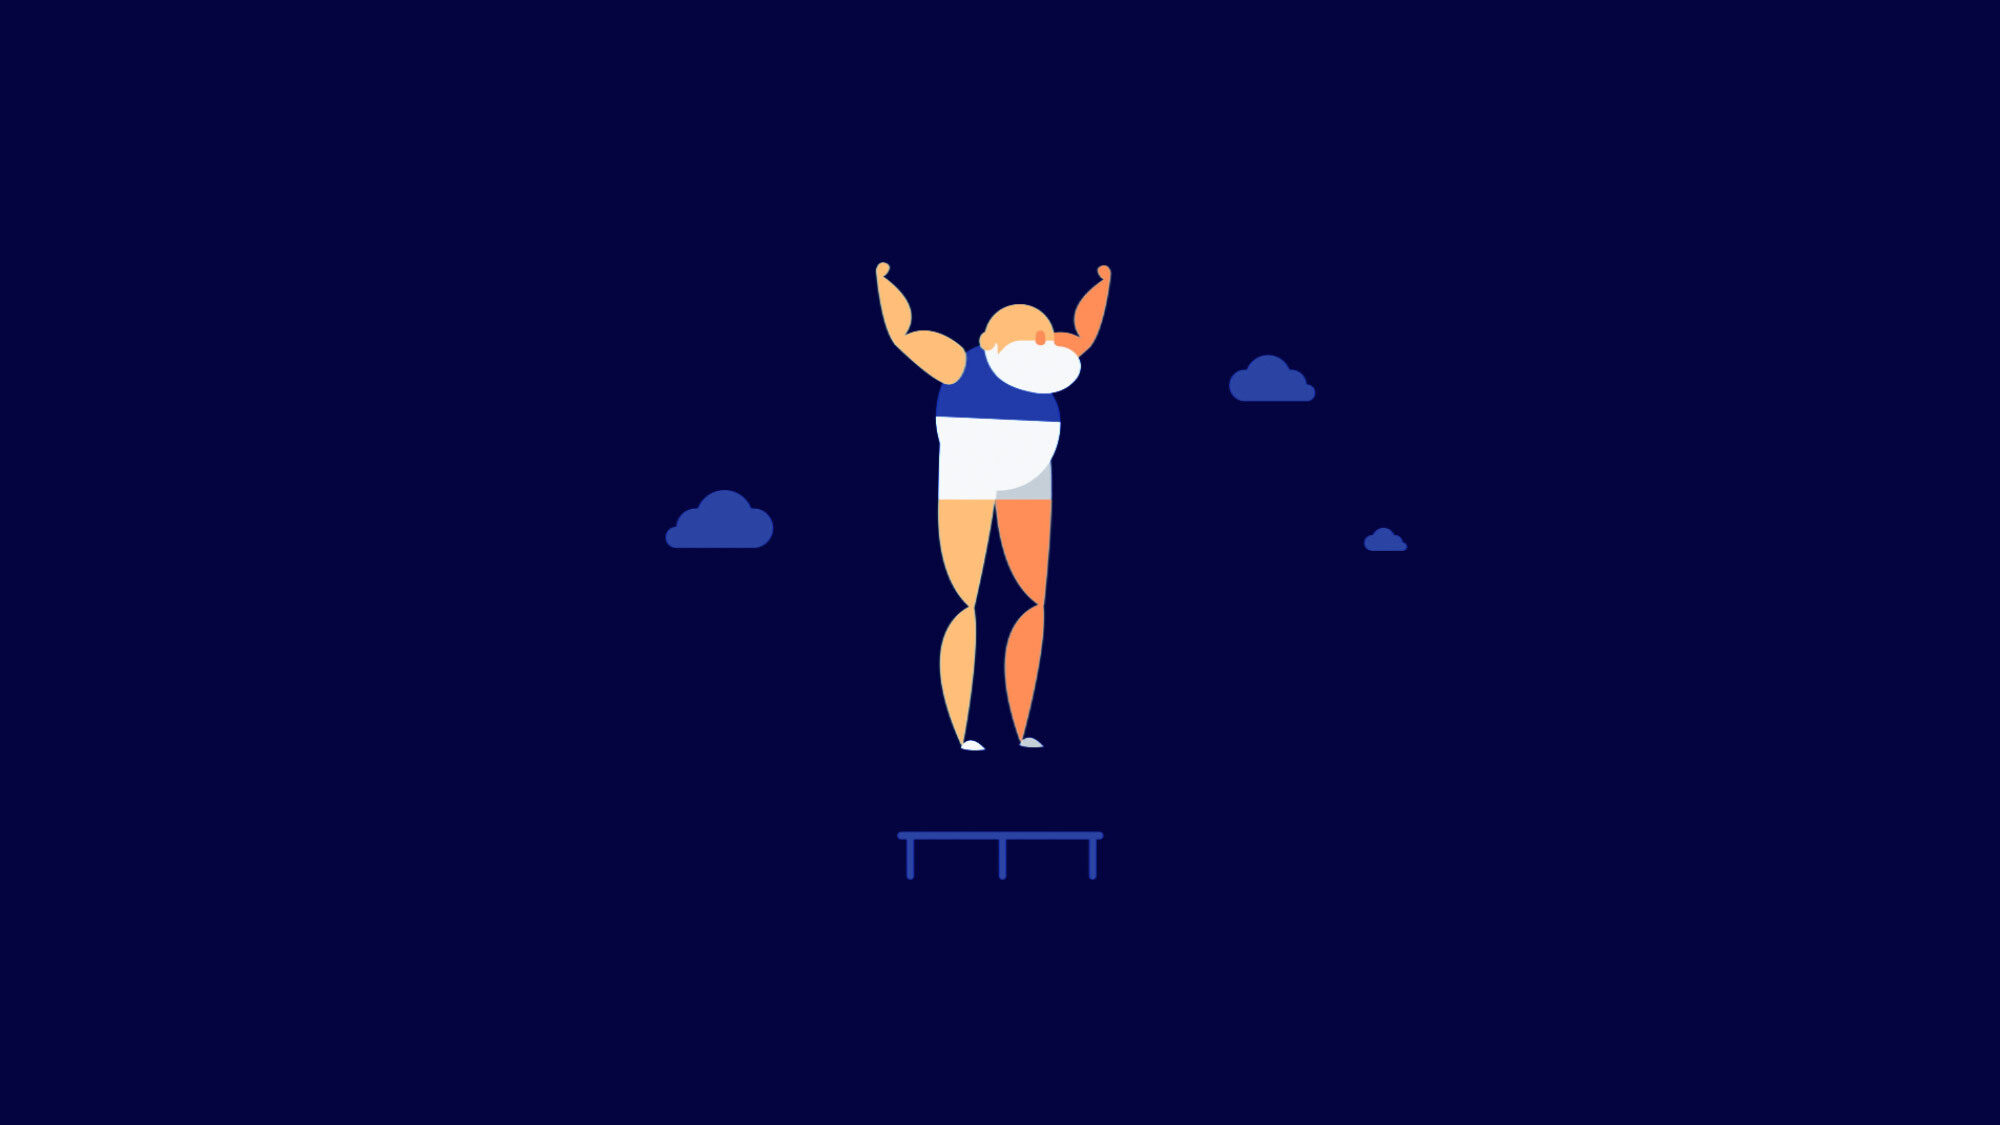 A fun animation of an old man jumping on a trampoline over a blue background